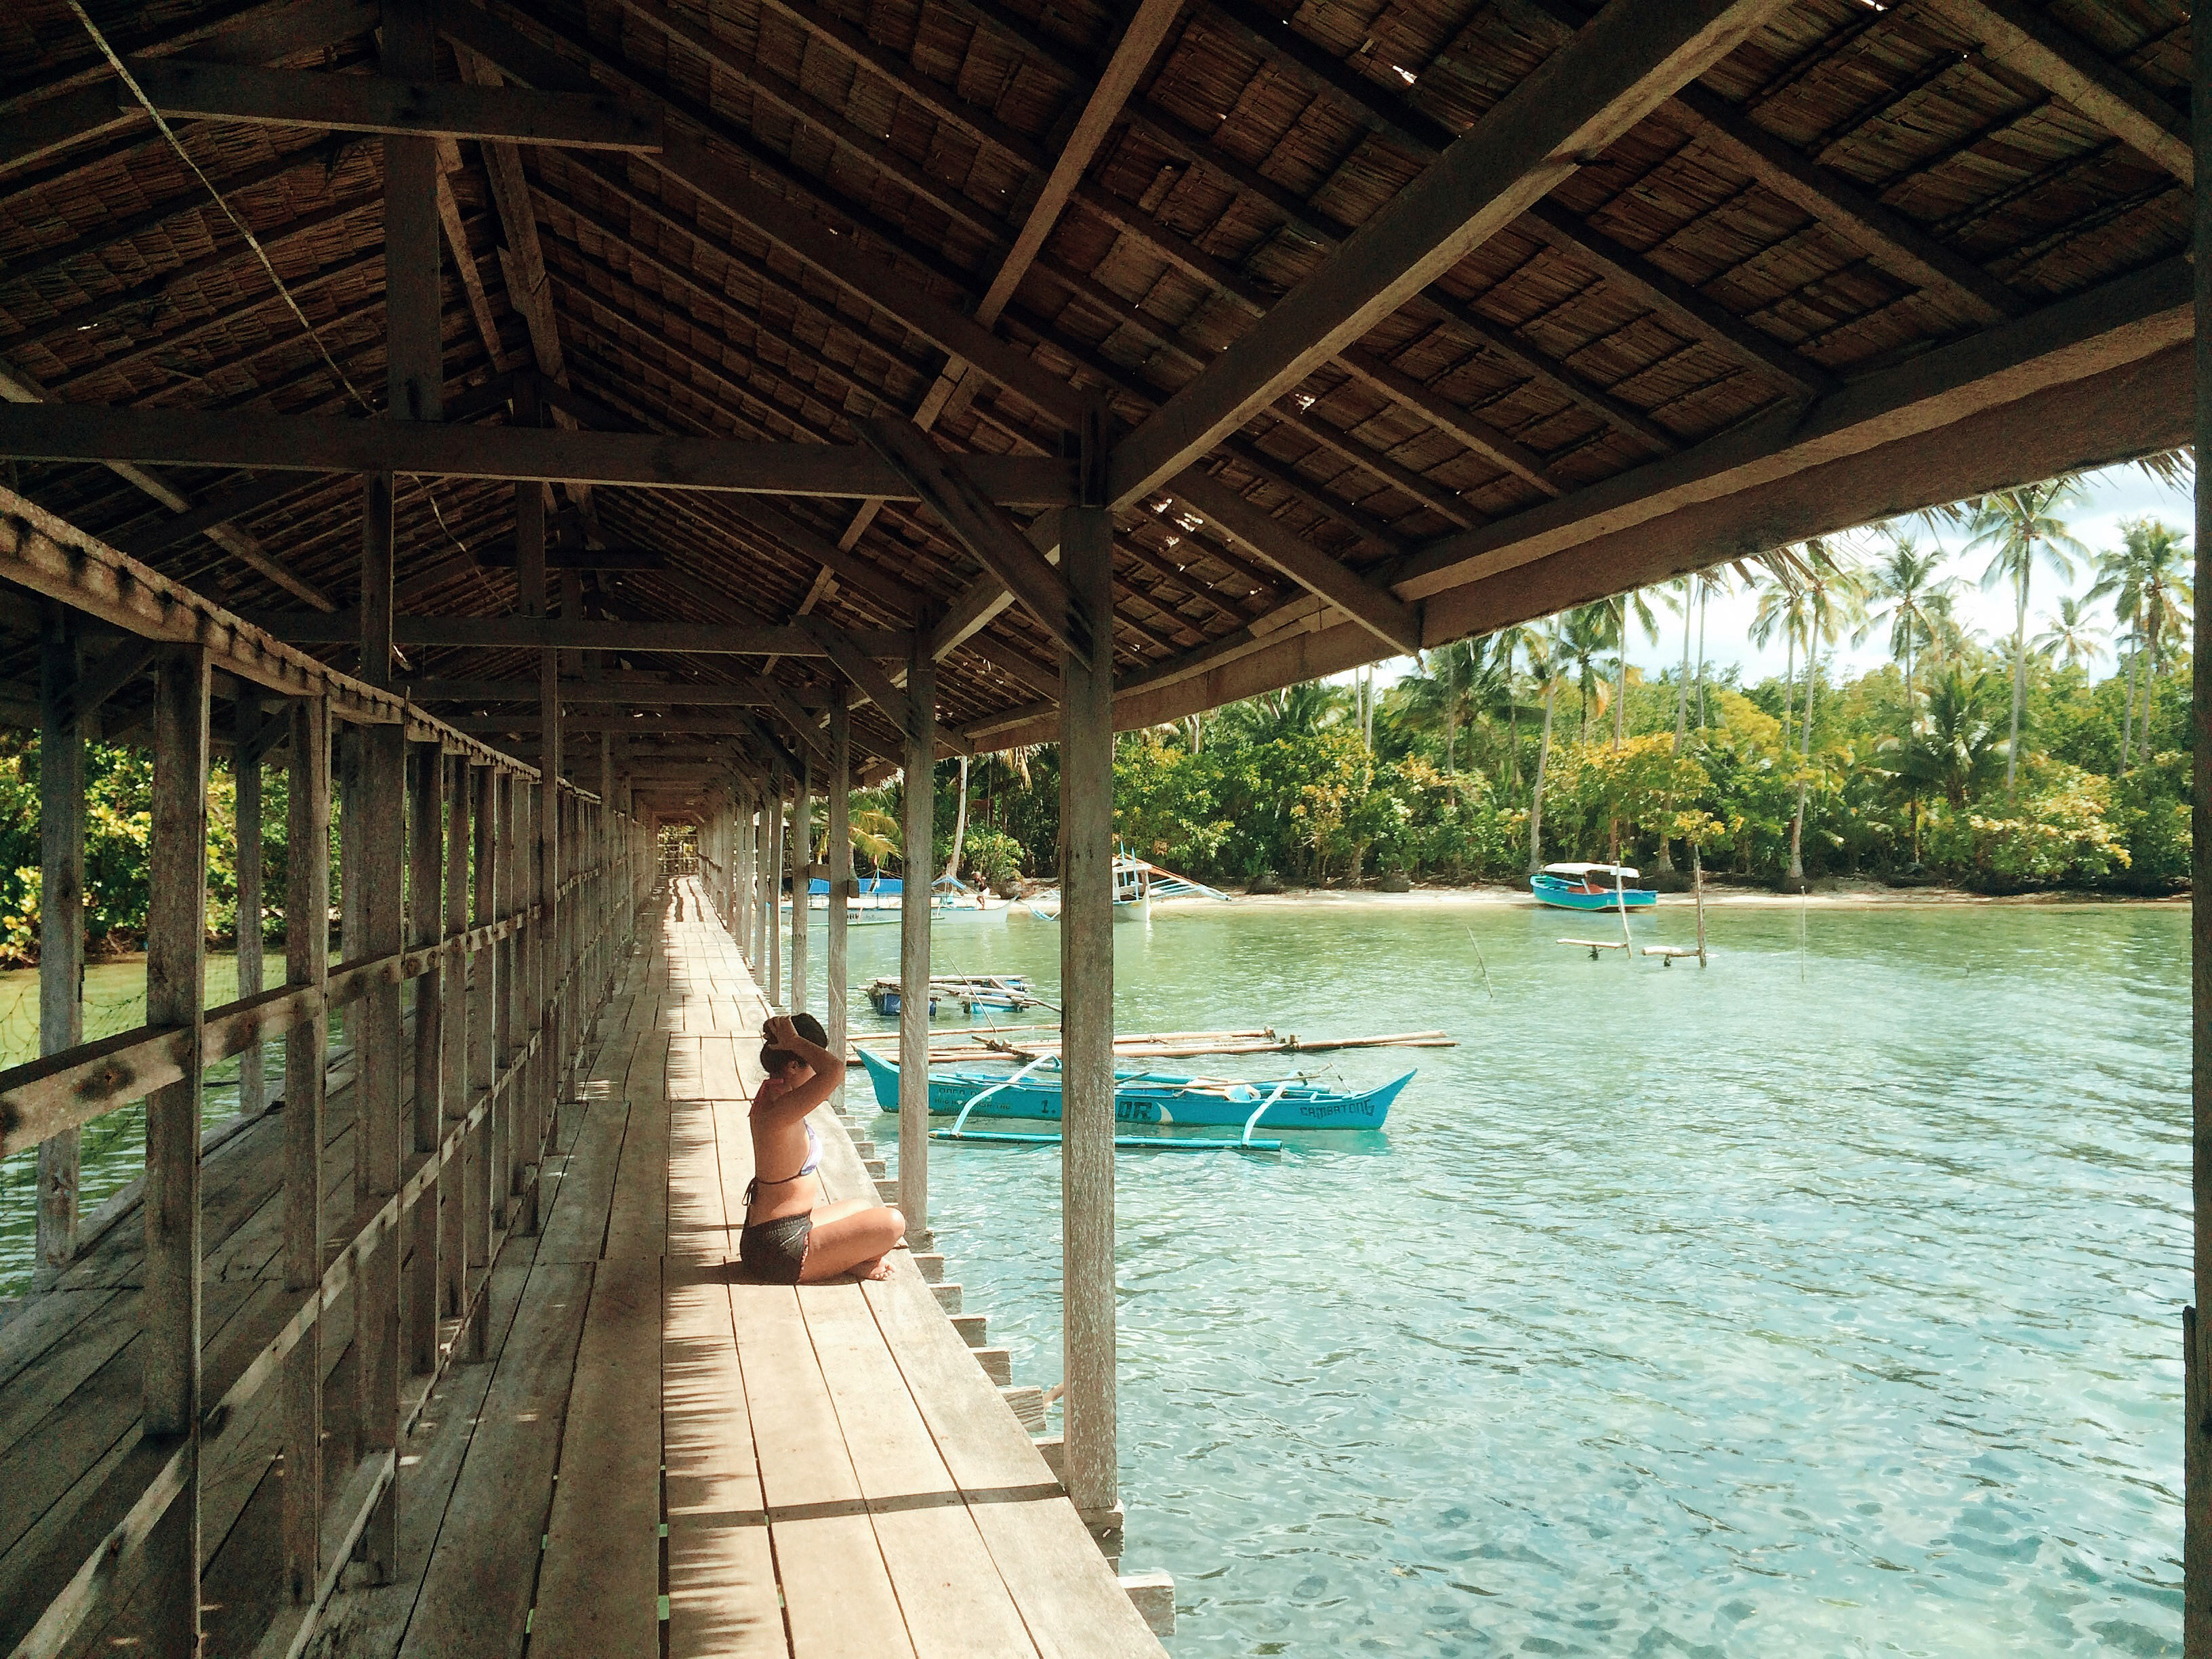 The dock at Pacific View Resort, Hinatuan, Surigao Del Sur, Philippines